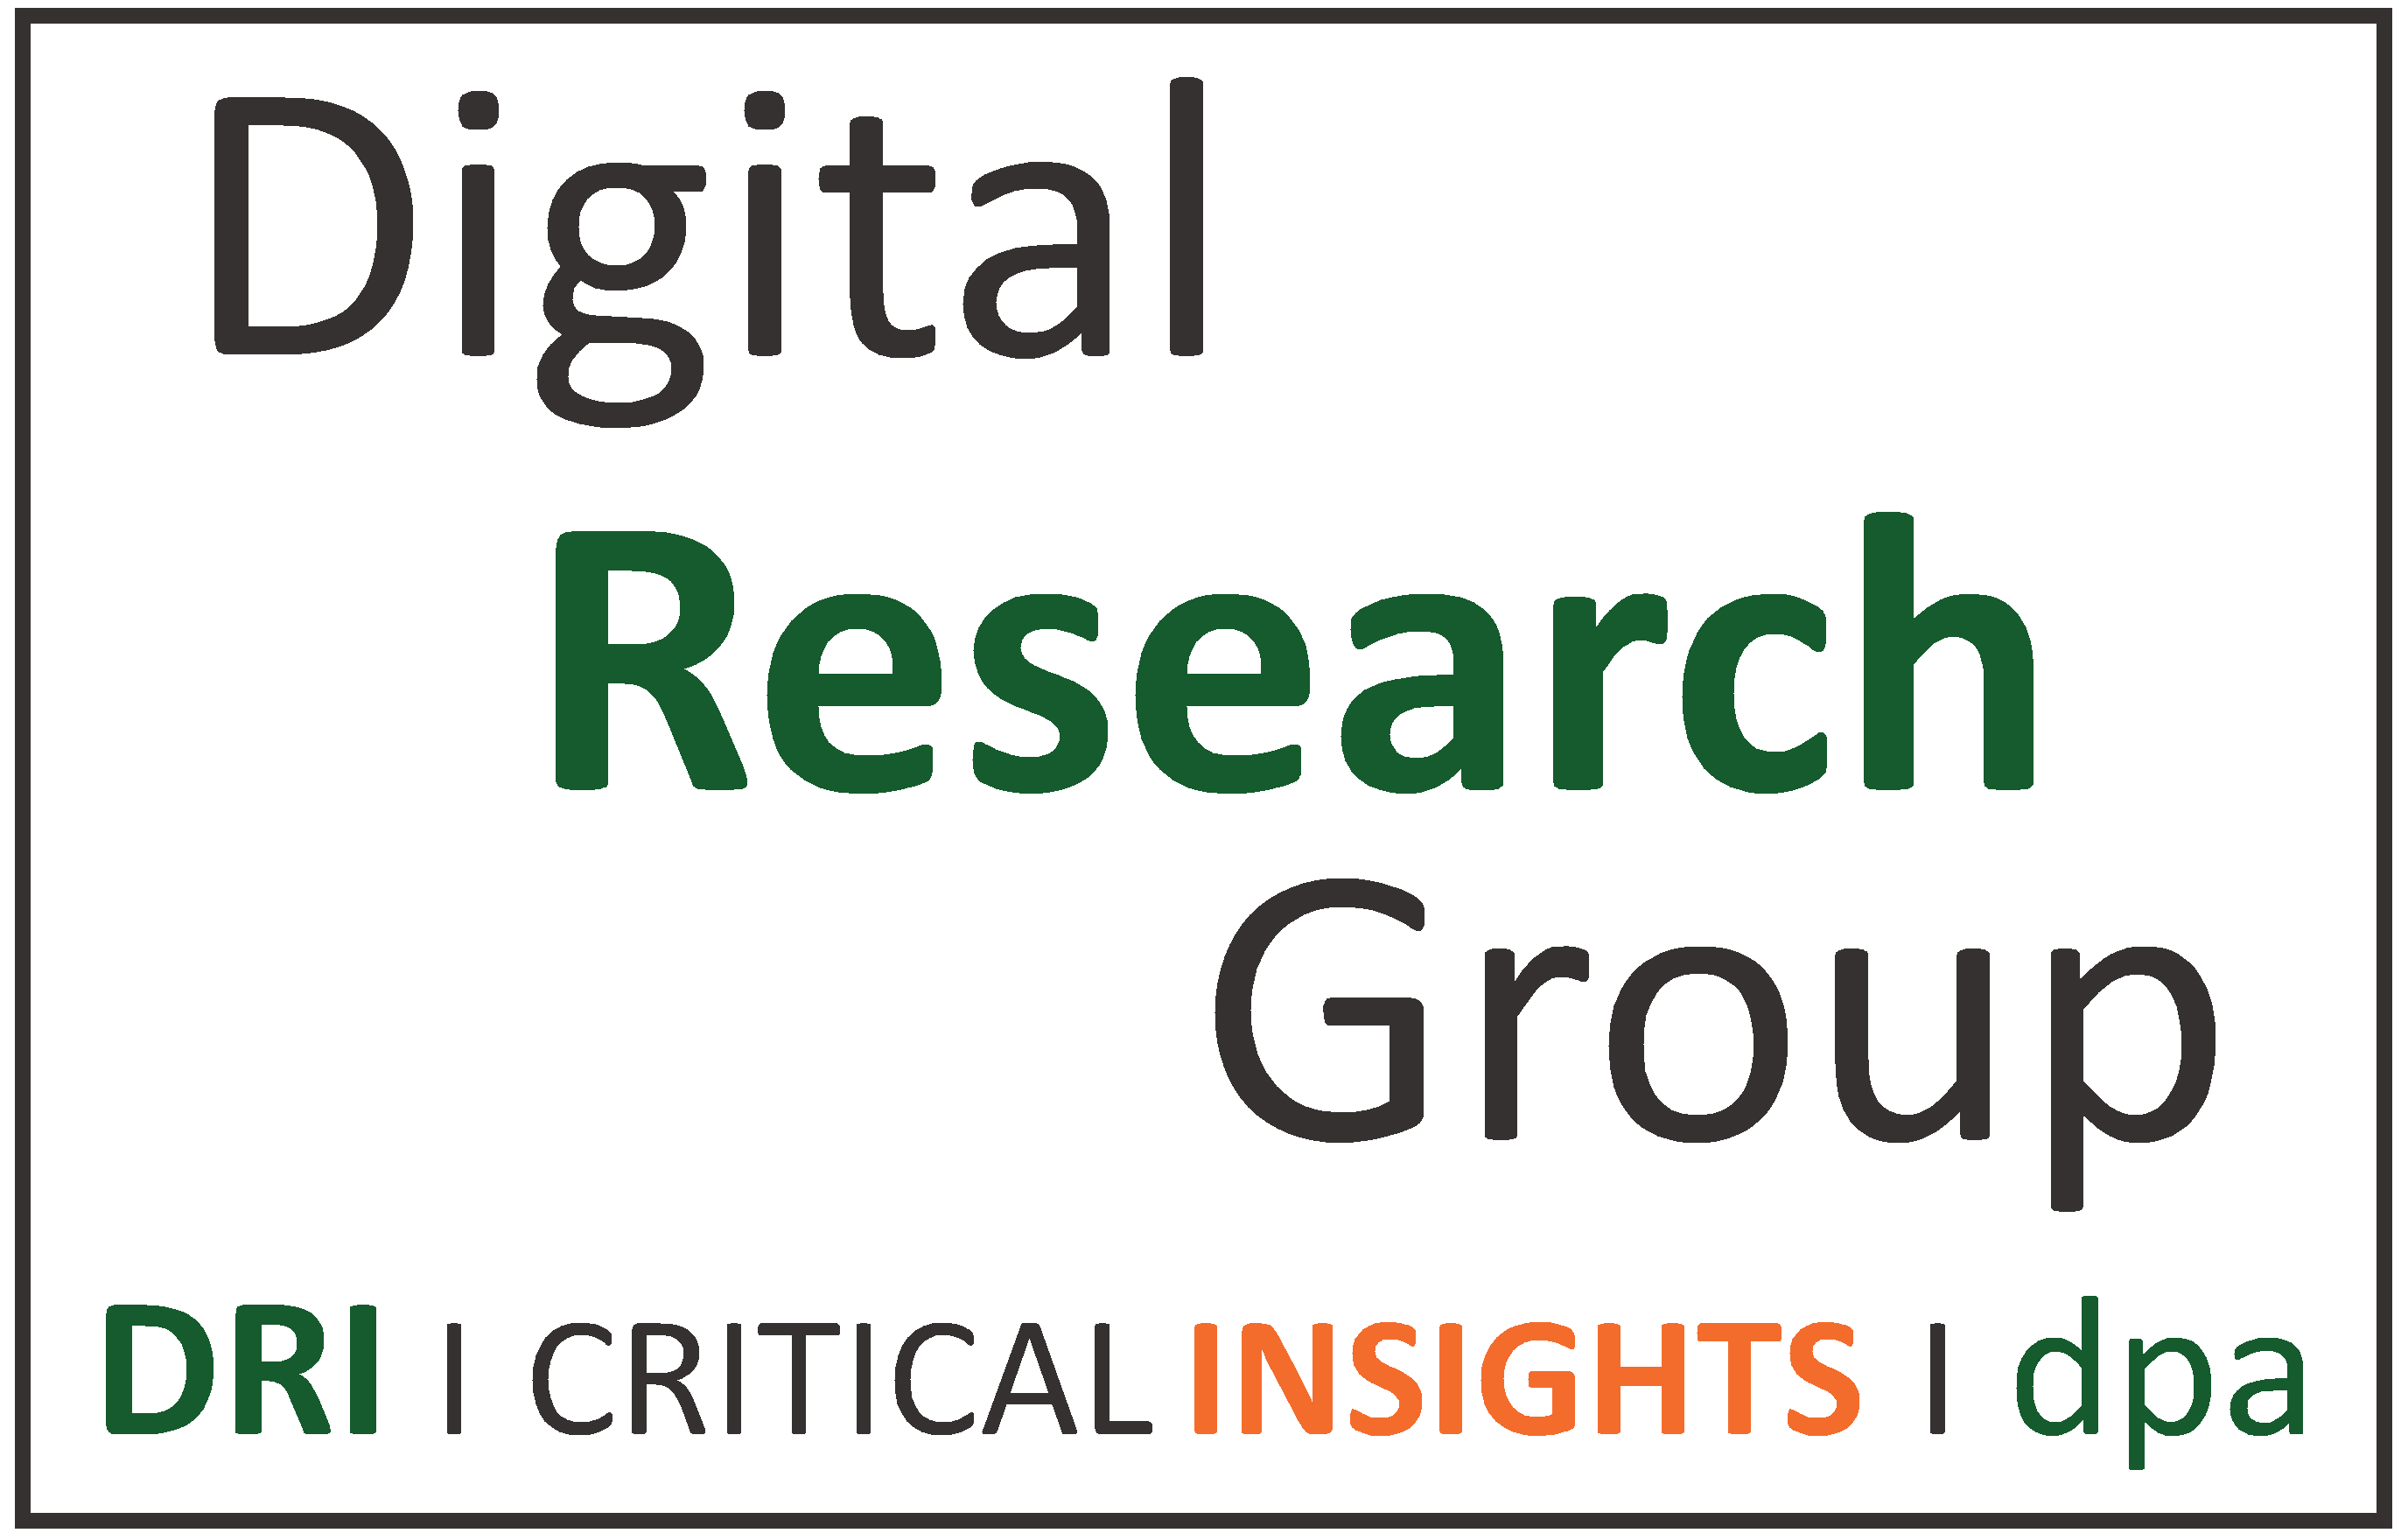 Digital Research Group